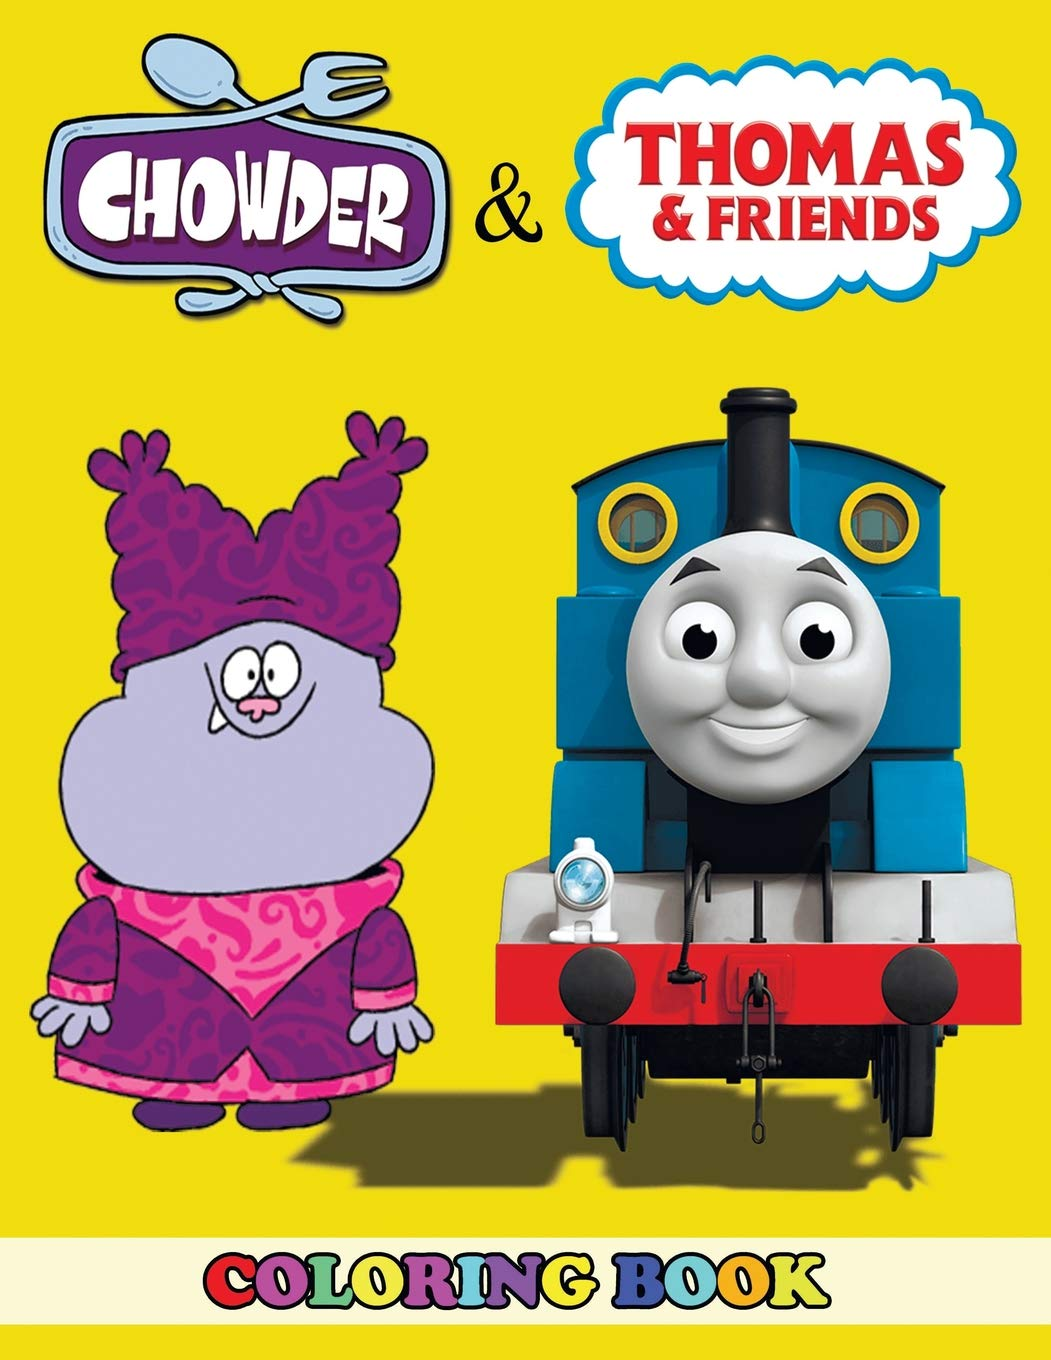 Amazon.com: Chowder and Thomas the Train Coloring Book: 2 in ...